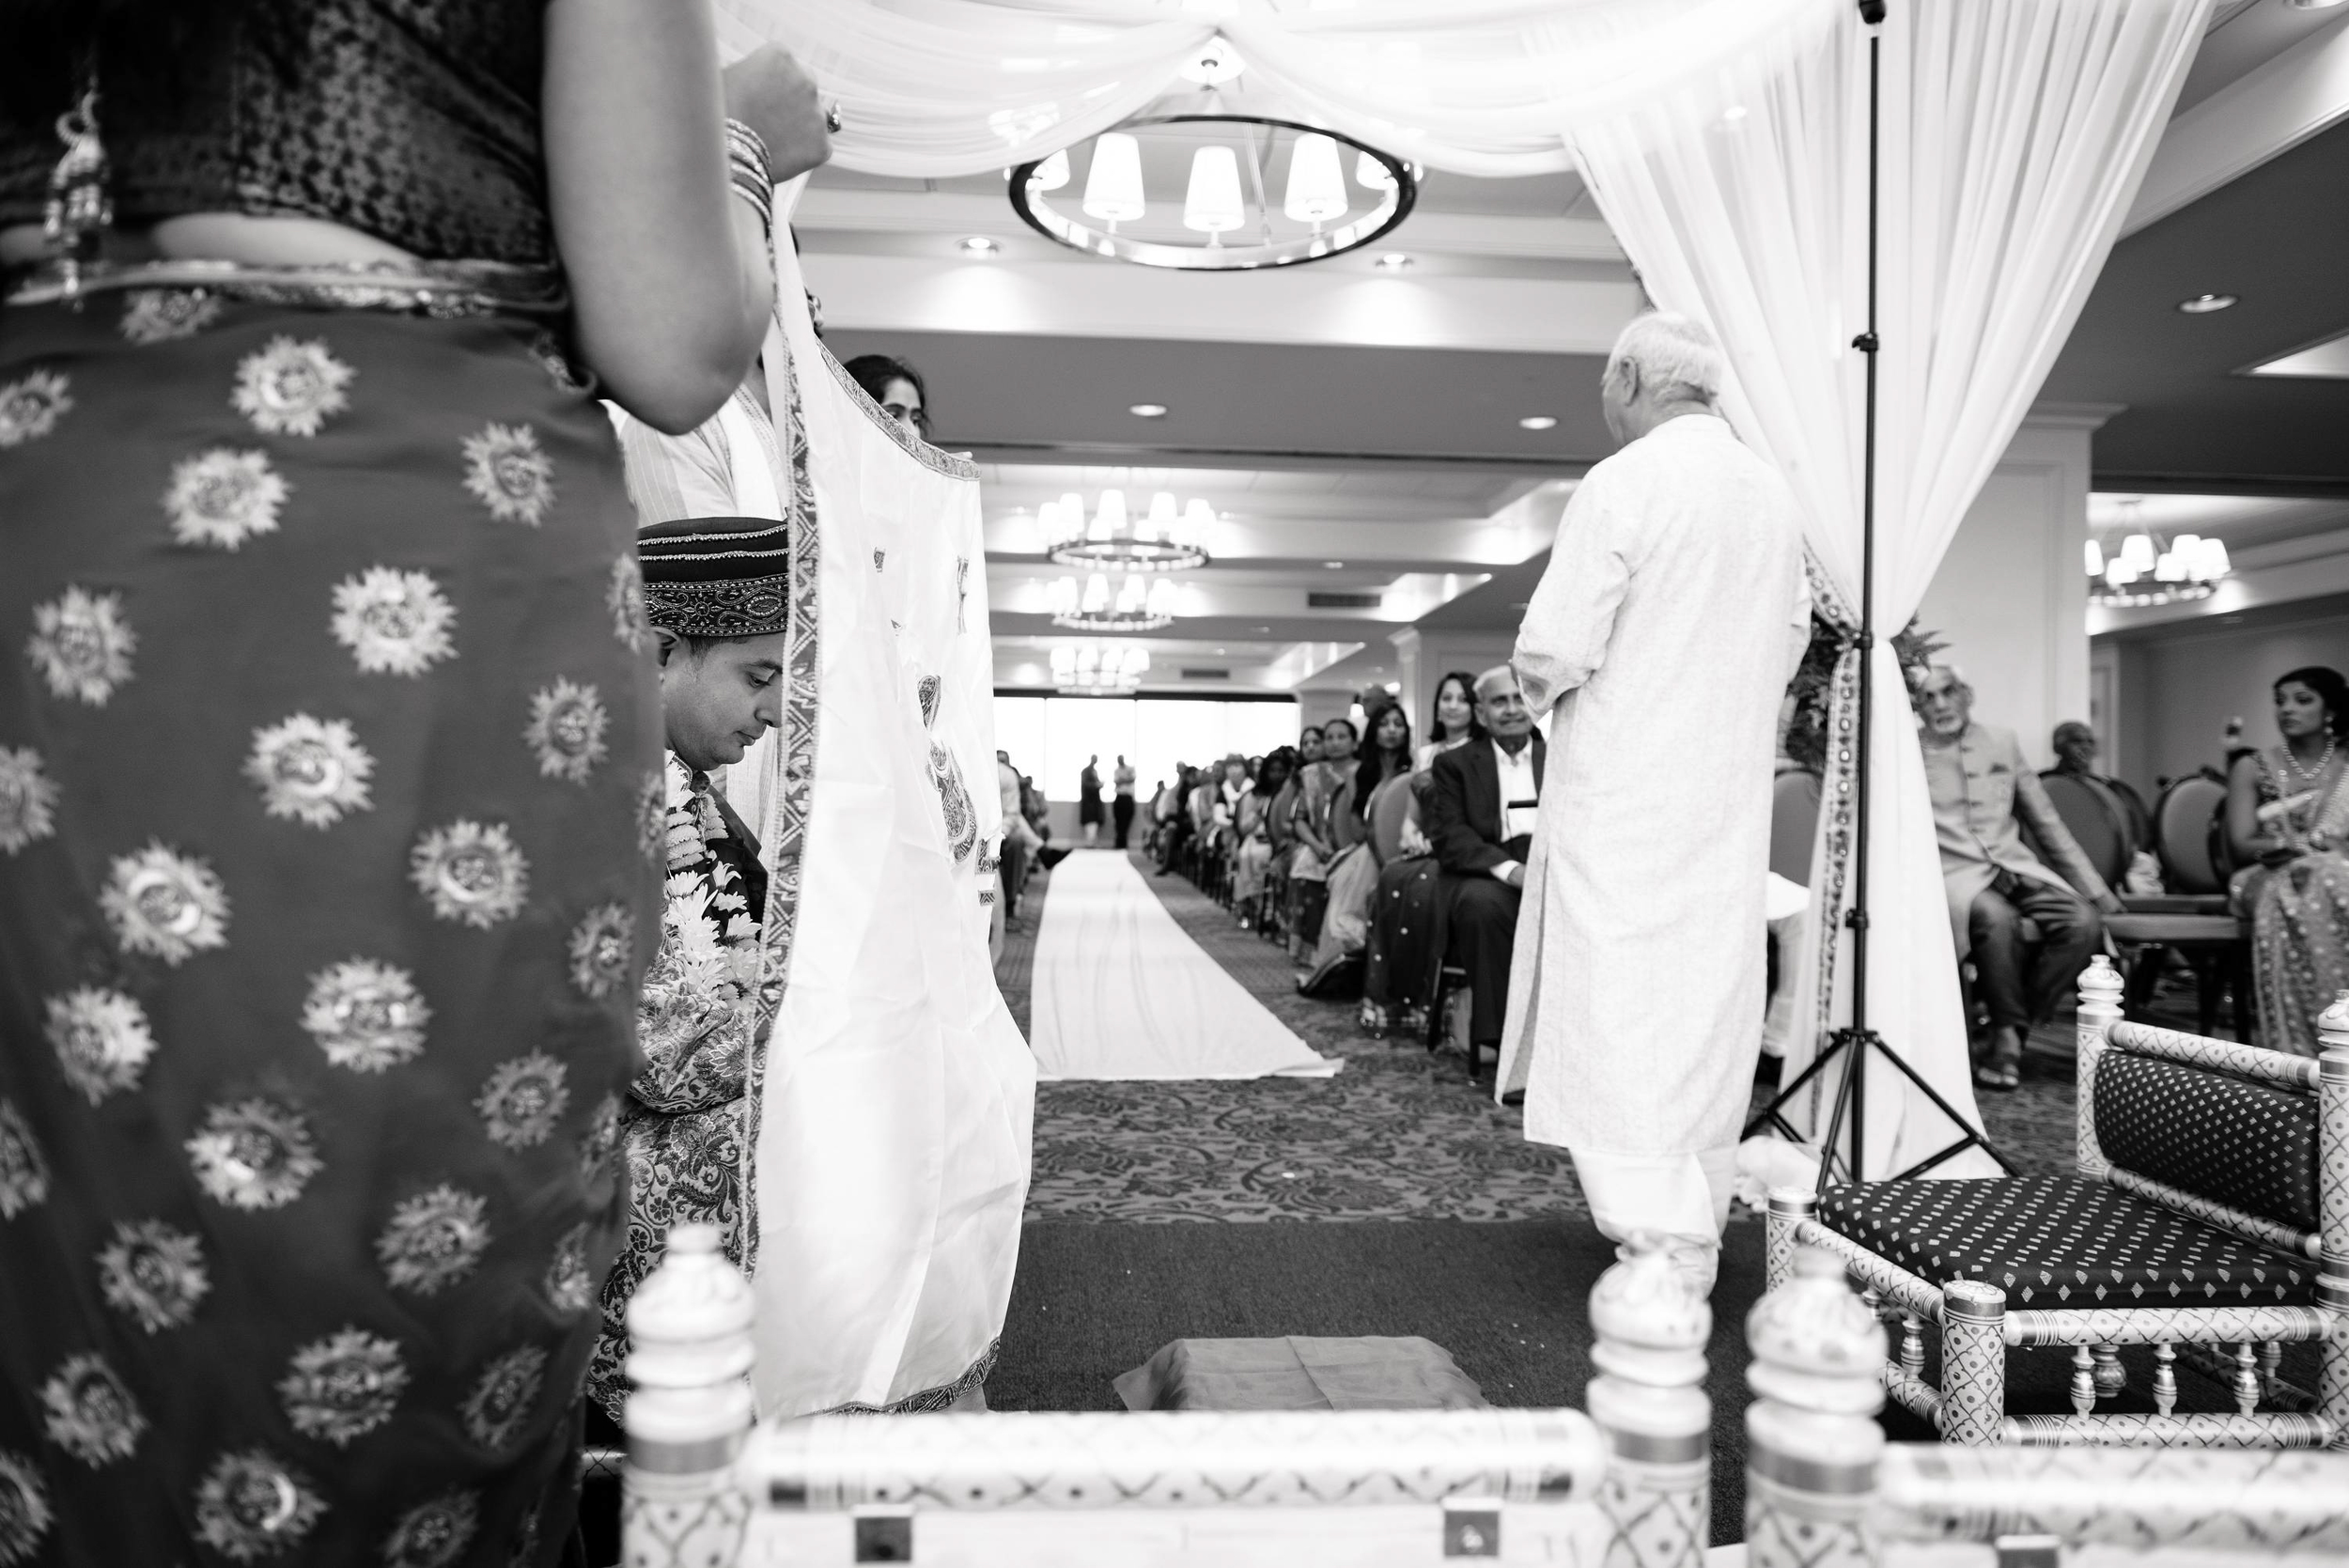 right before the bride walks down the aisle. This was an indoor wedding.